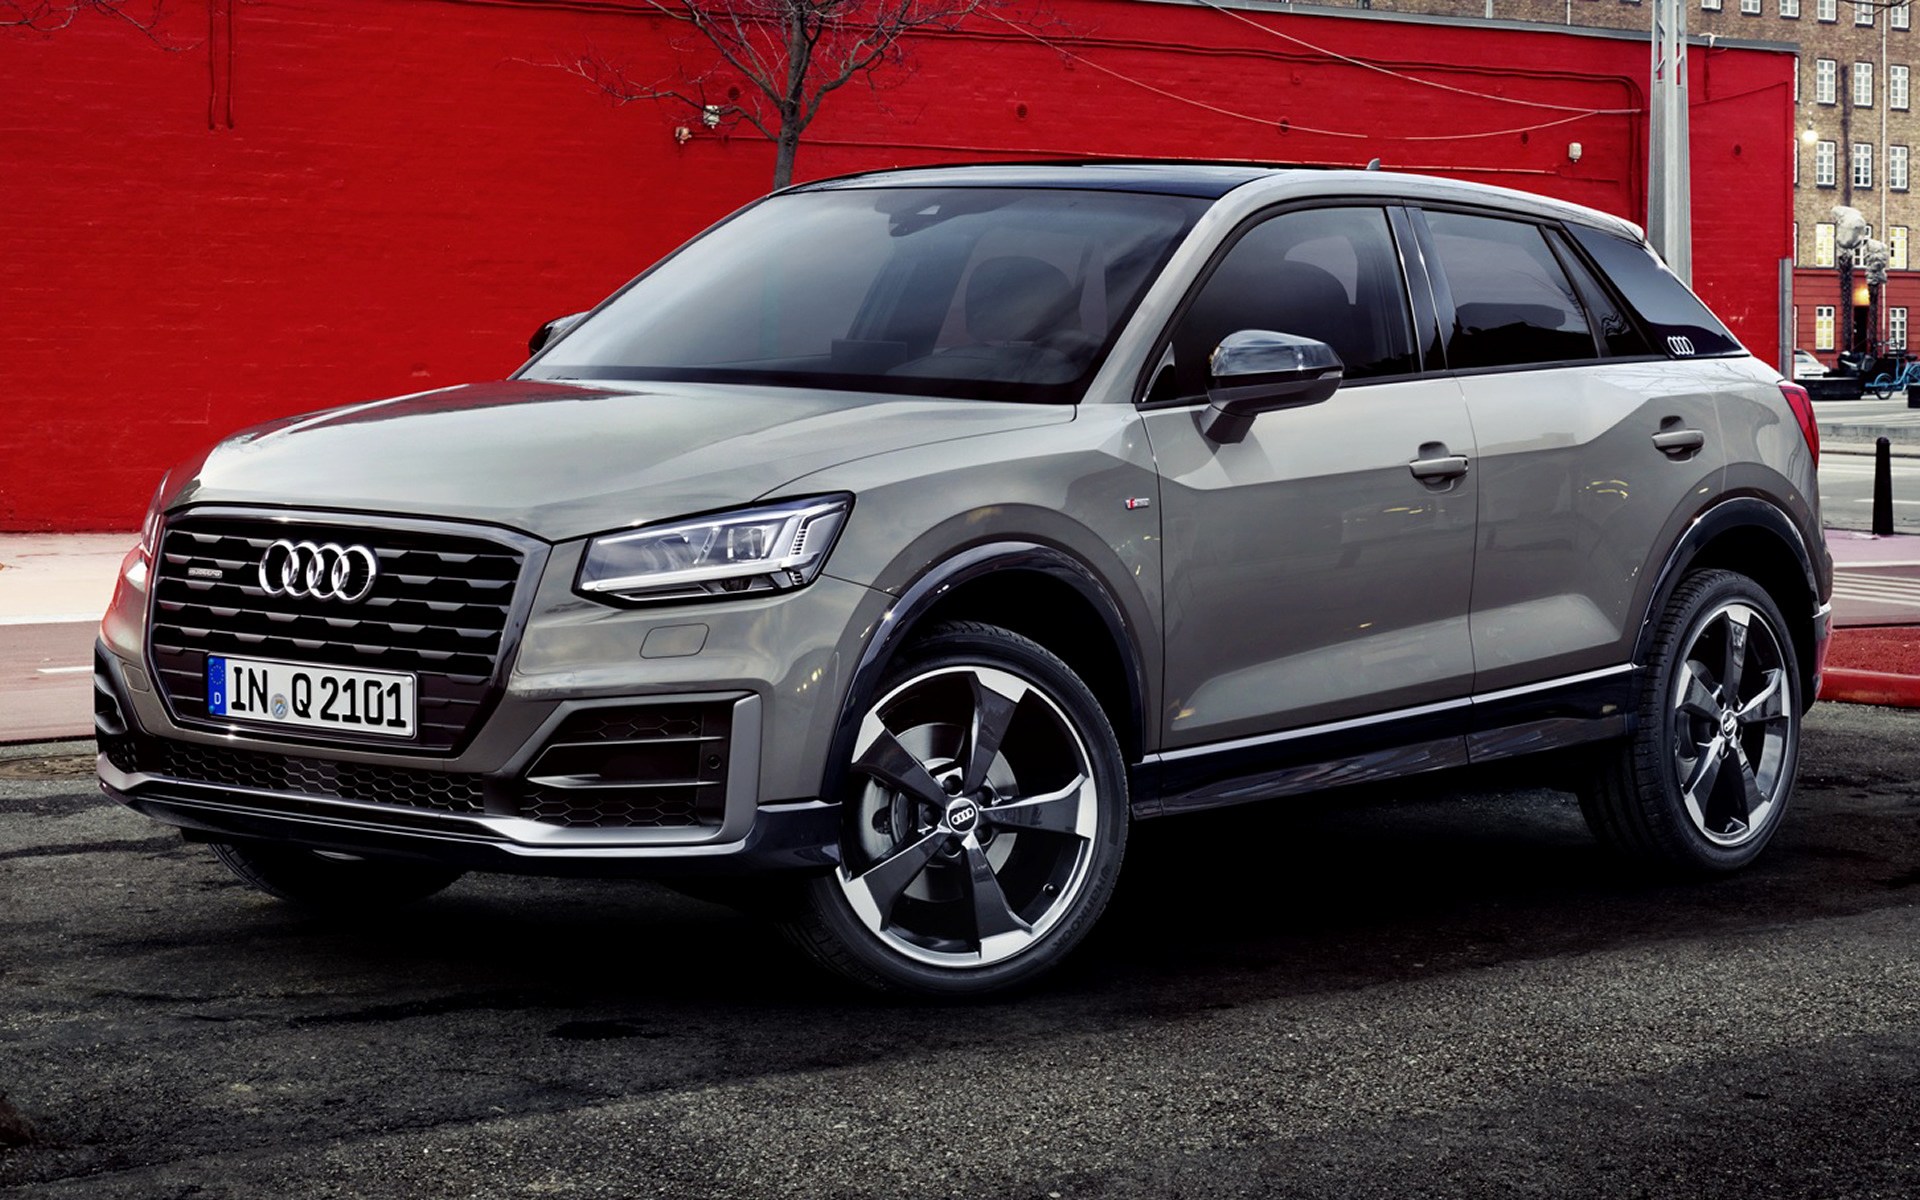 Audi Q2 Edition #1 (2016) Wallpapers and HD Images - Car Pixel